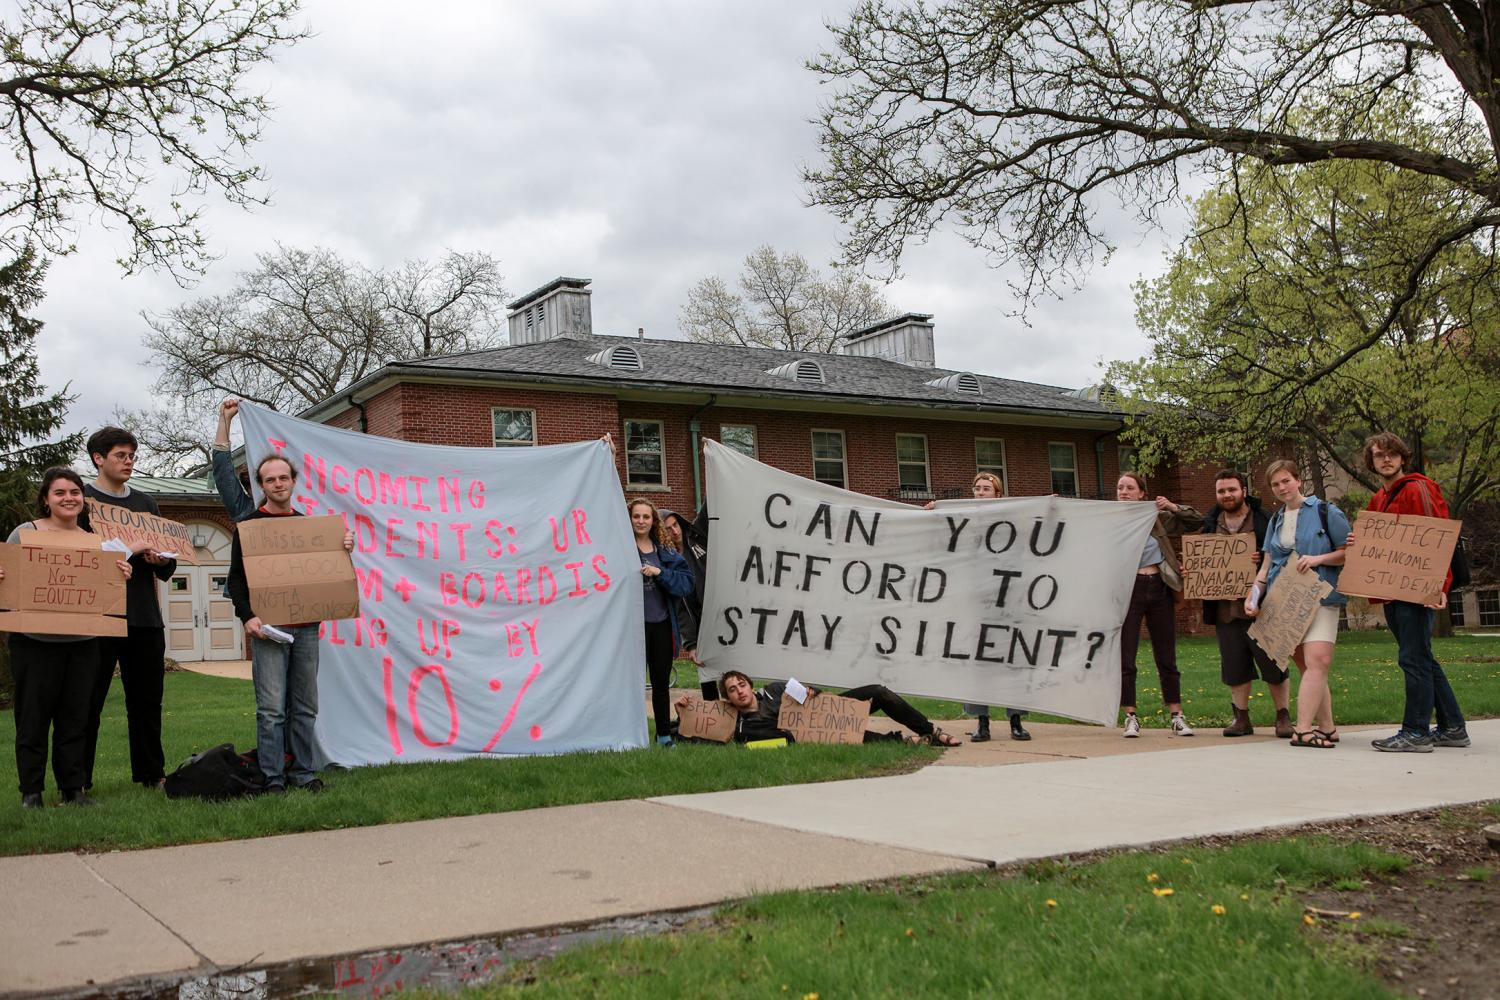 Students protest against the administration's new housing, dining and OSCA financial aid policies last Friday. The protest was one of many actions in opposition to the changes, leading to today's meeting between OSCA officers and the administration.